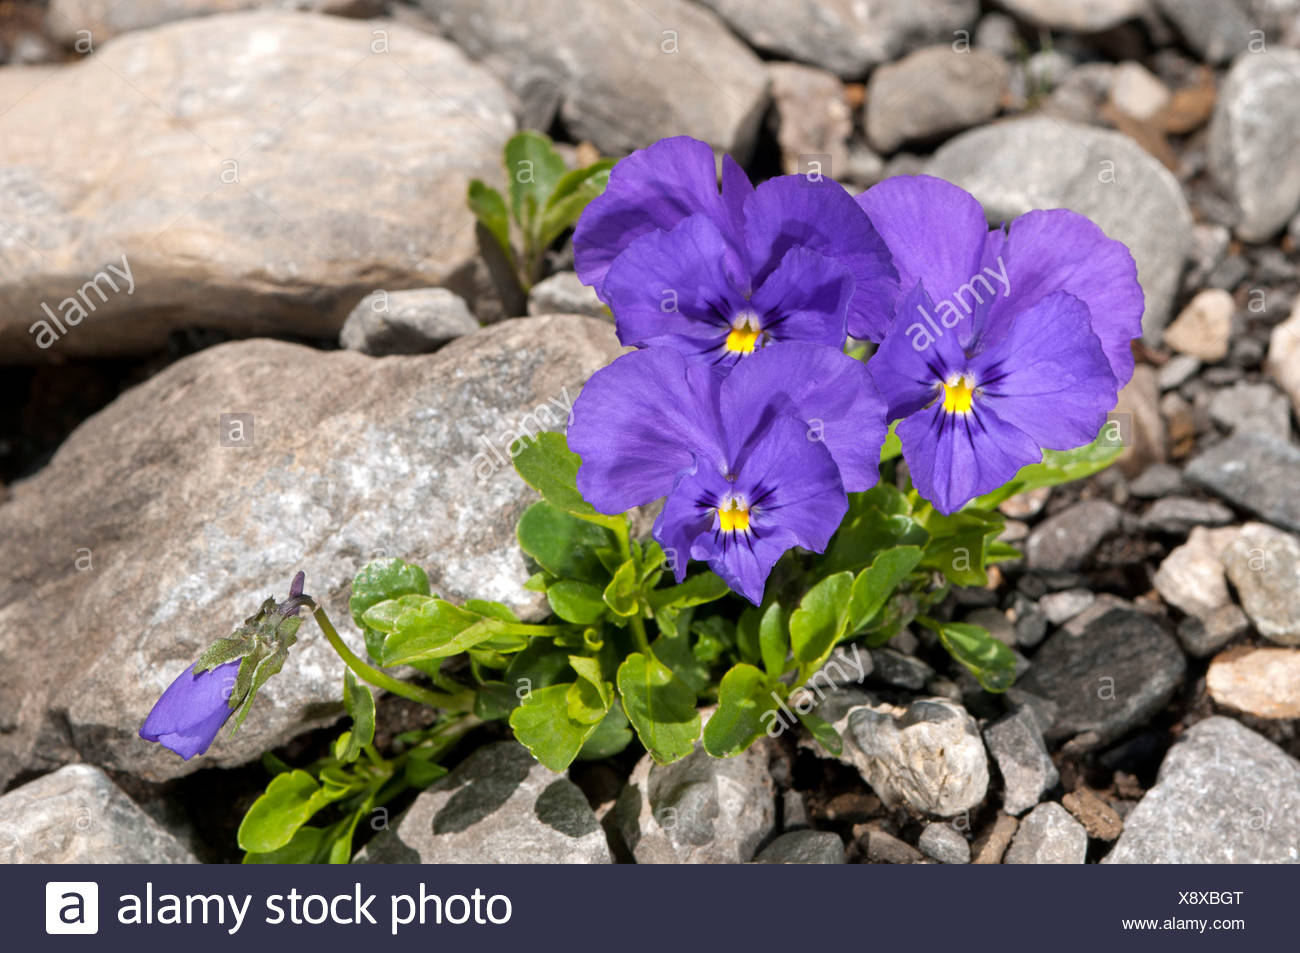 Mont-Cenis violets or pansies (Viola cenisia), Sanetschpass, Switzerland Stock Photo